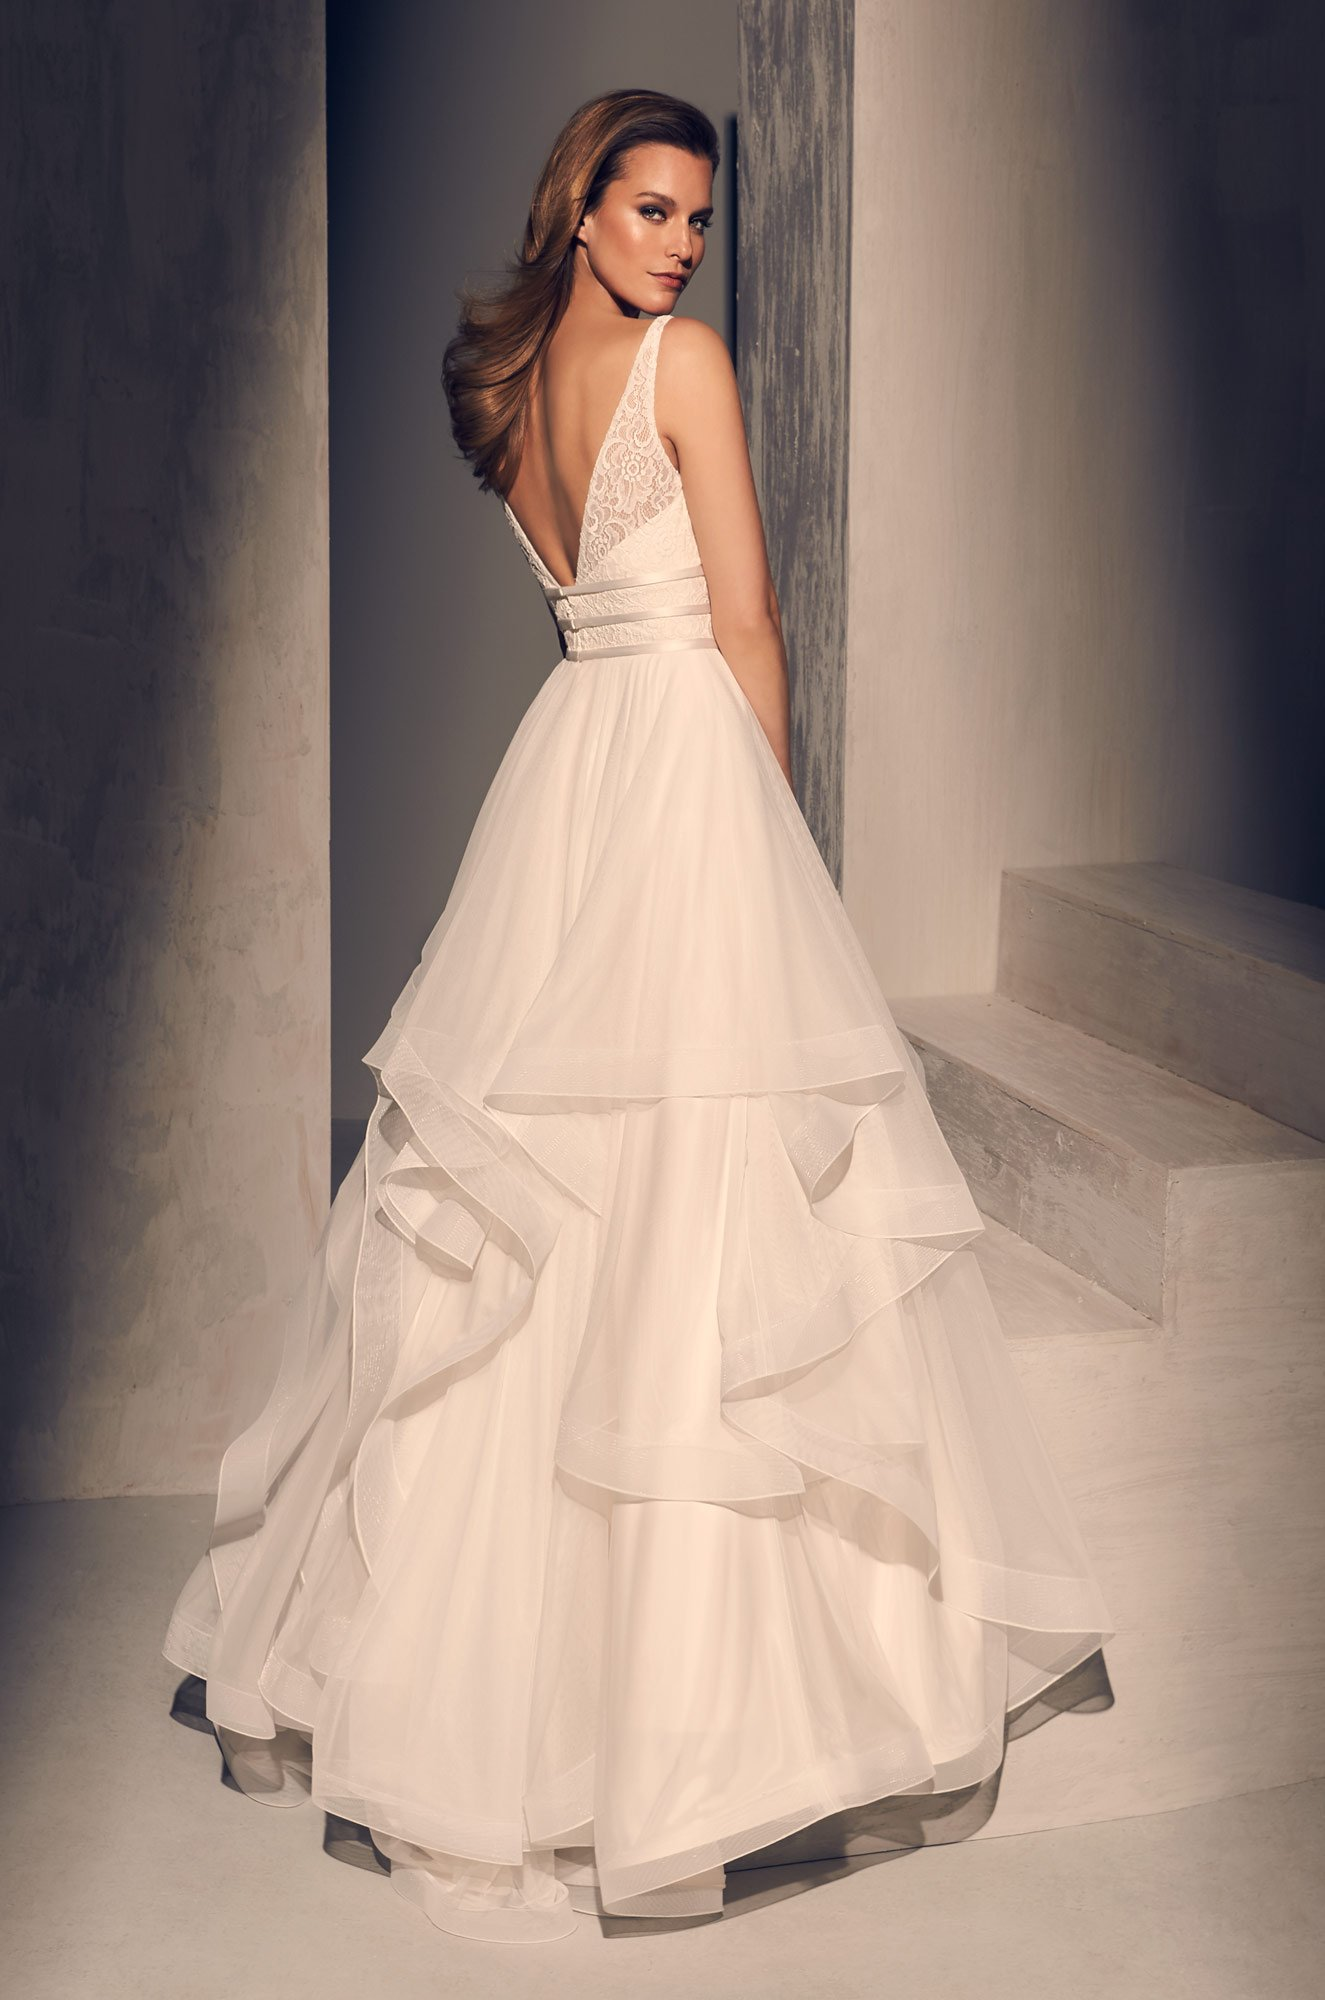 Radiant Ruffled Wedding Dress - Style #2218 | Mikaella Bridal